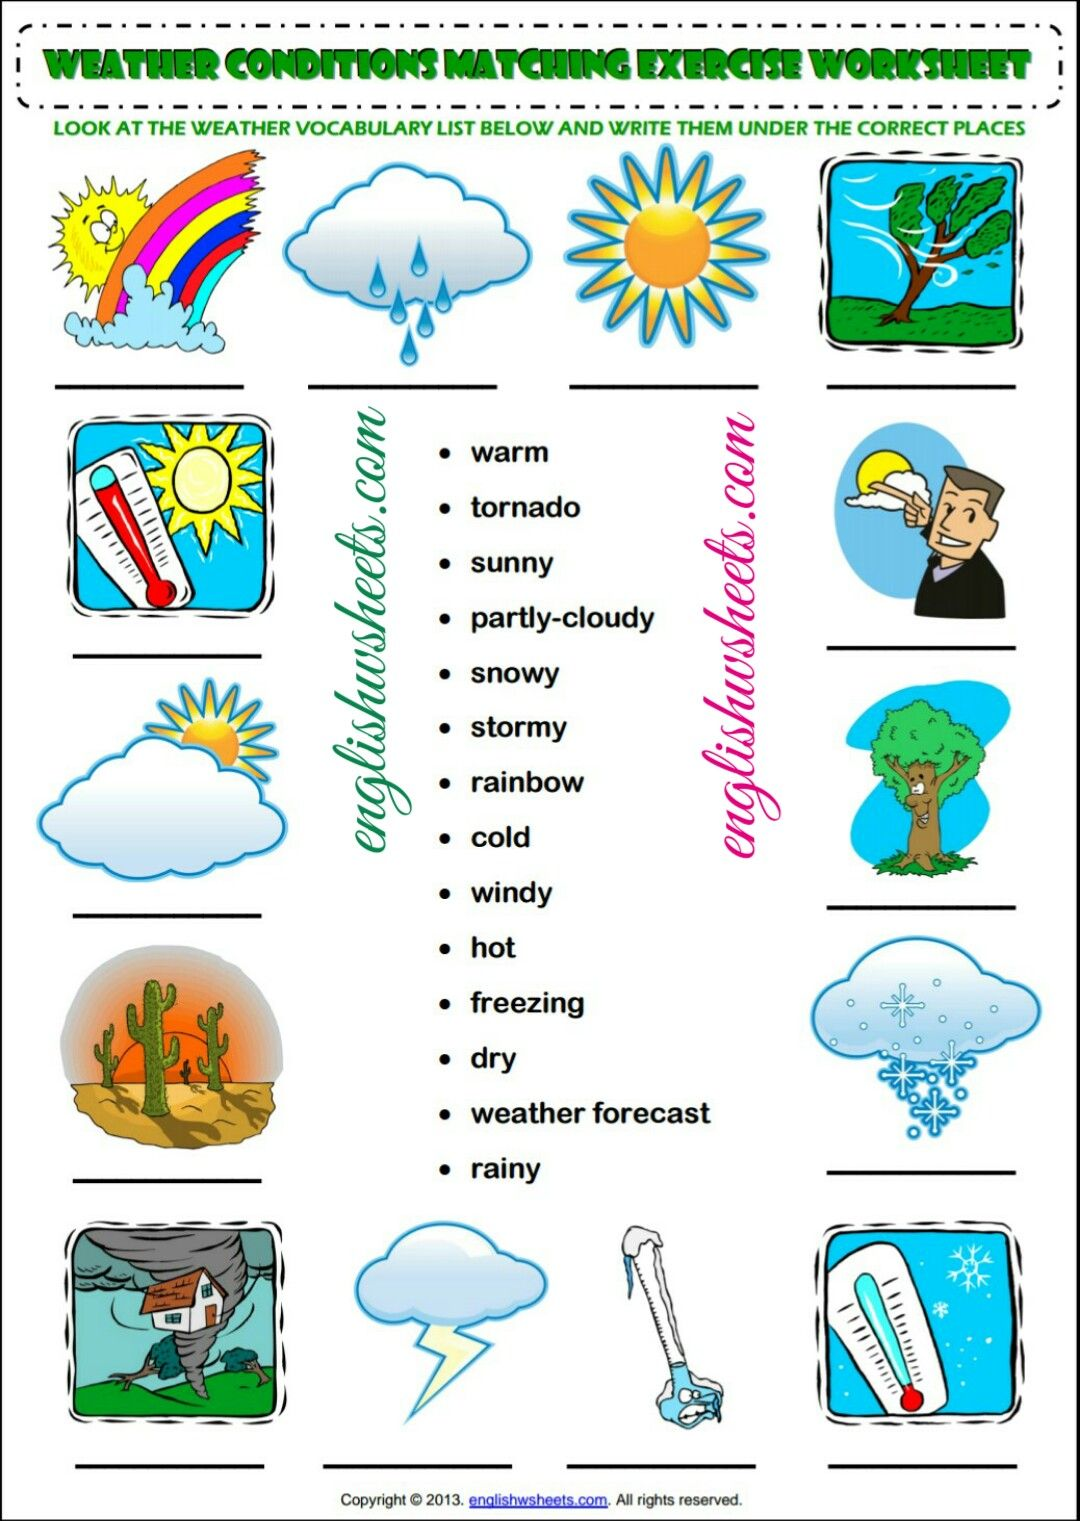 Esl Printable Weather Conditions Worksheets For Kids Esl